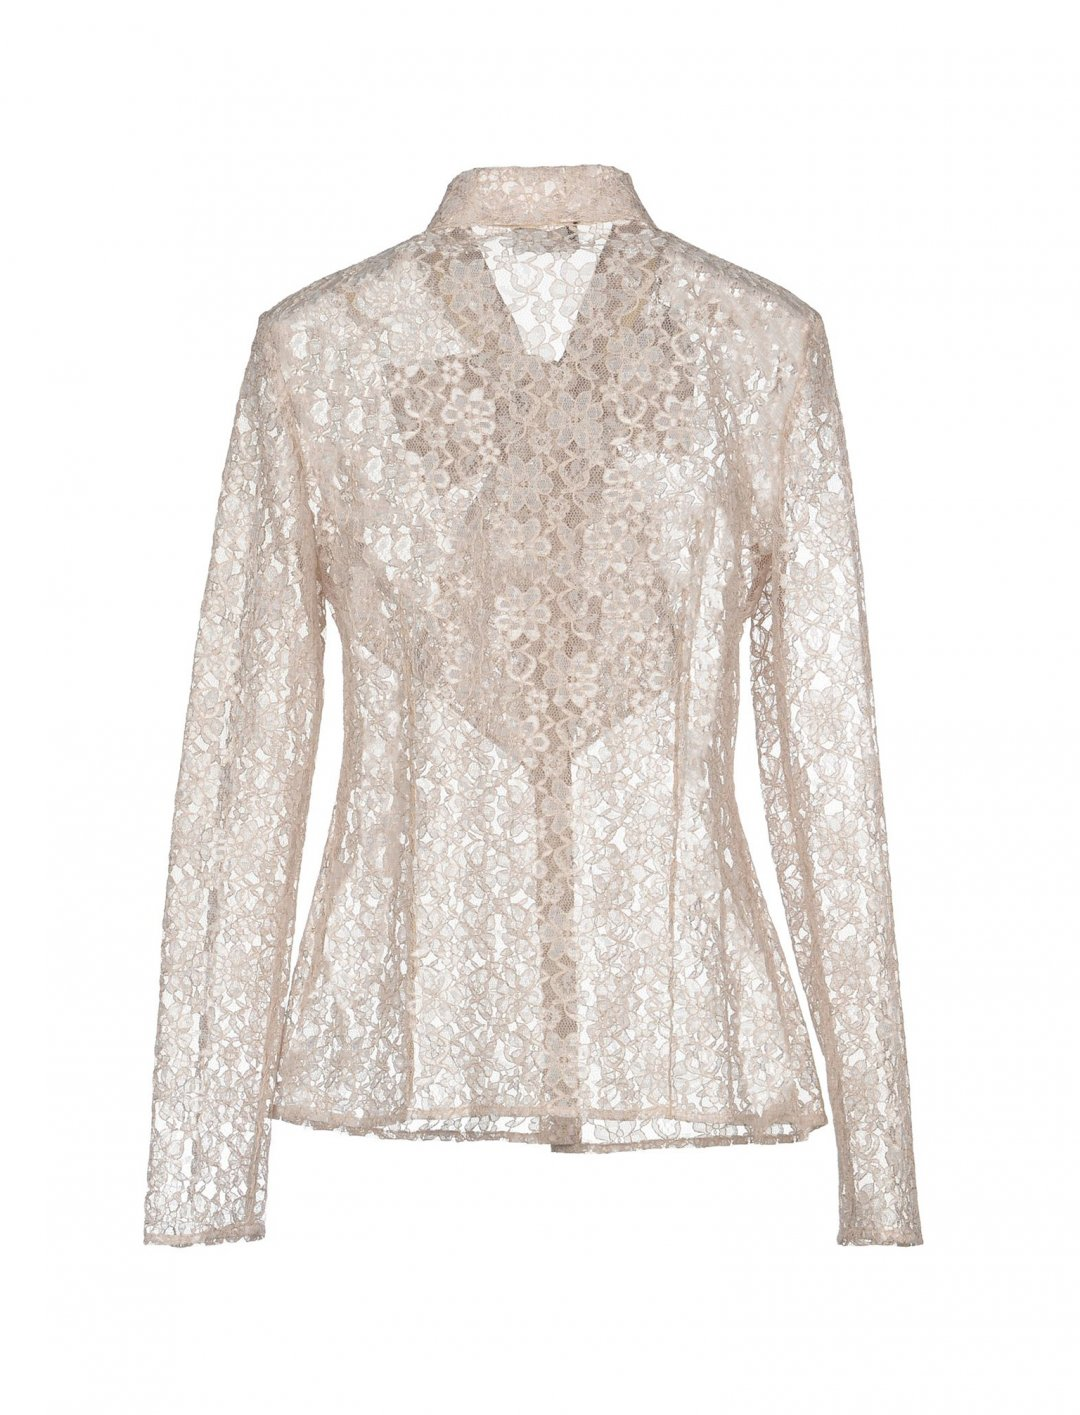 "Ermanno Scervino Lace Shirt {""id"":5,""product_section_id"":1,""name"":""Clothing"",""order"":5} Ermanno Scervino"